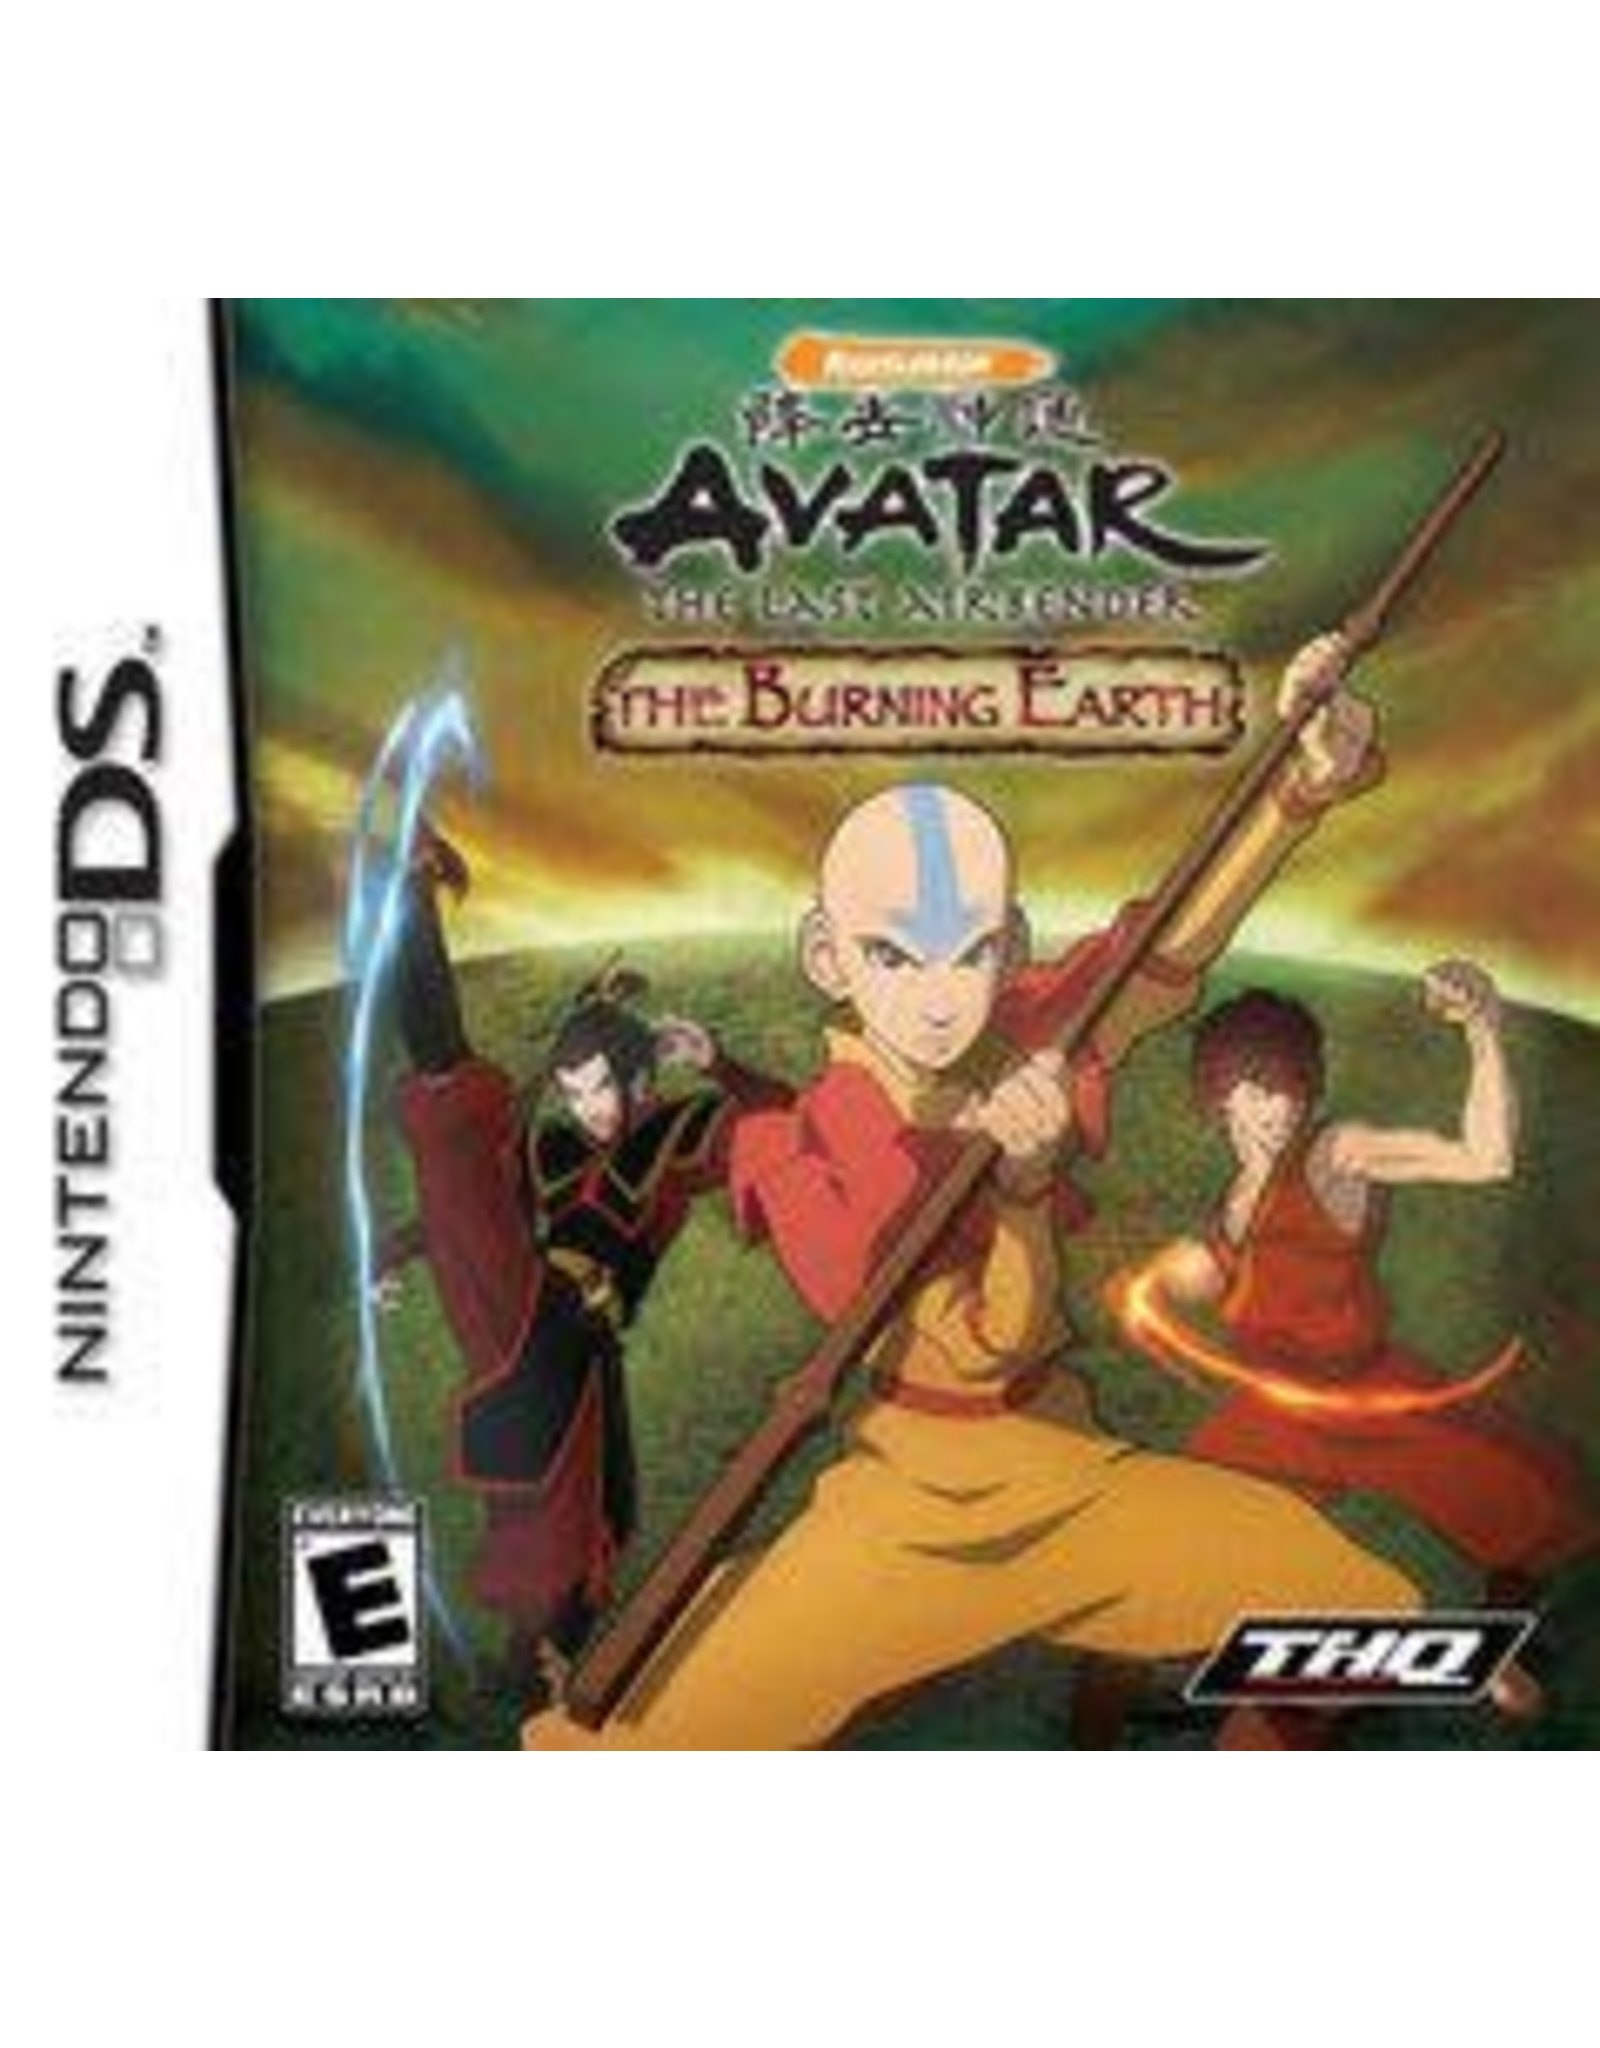 Nintendo DS Avatar The Burning Earth (Cart Only)